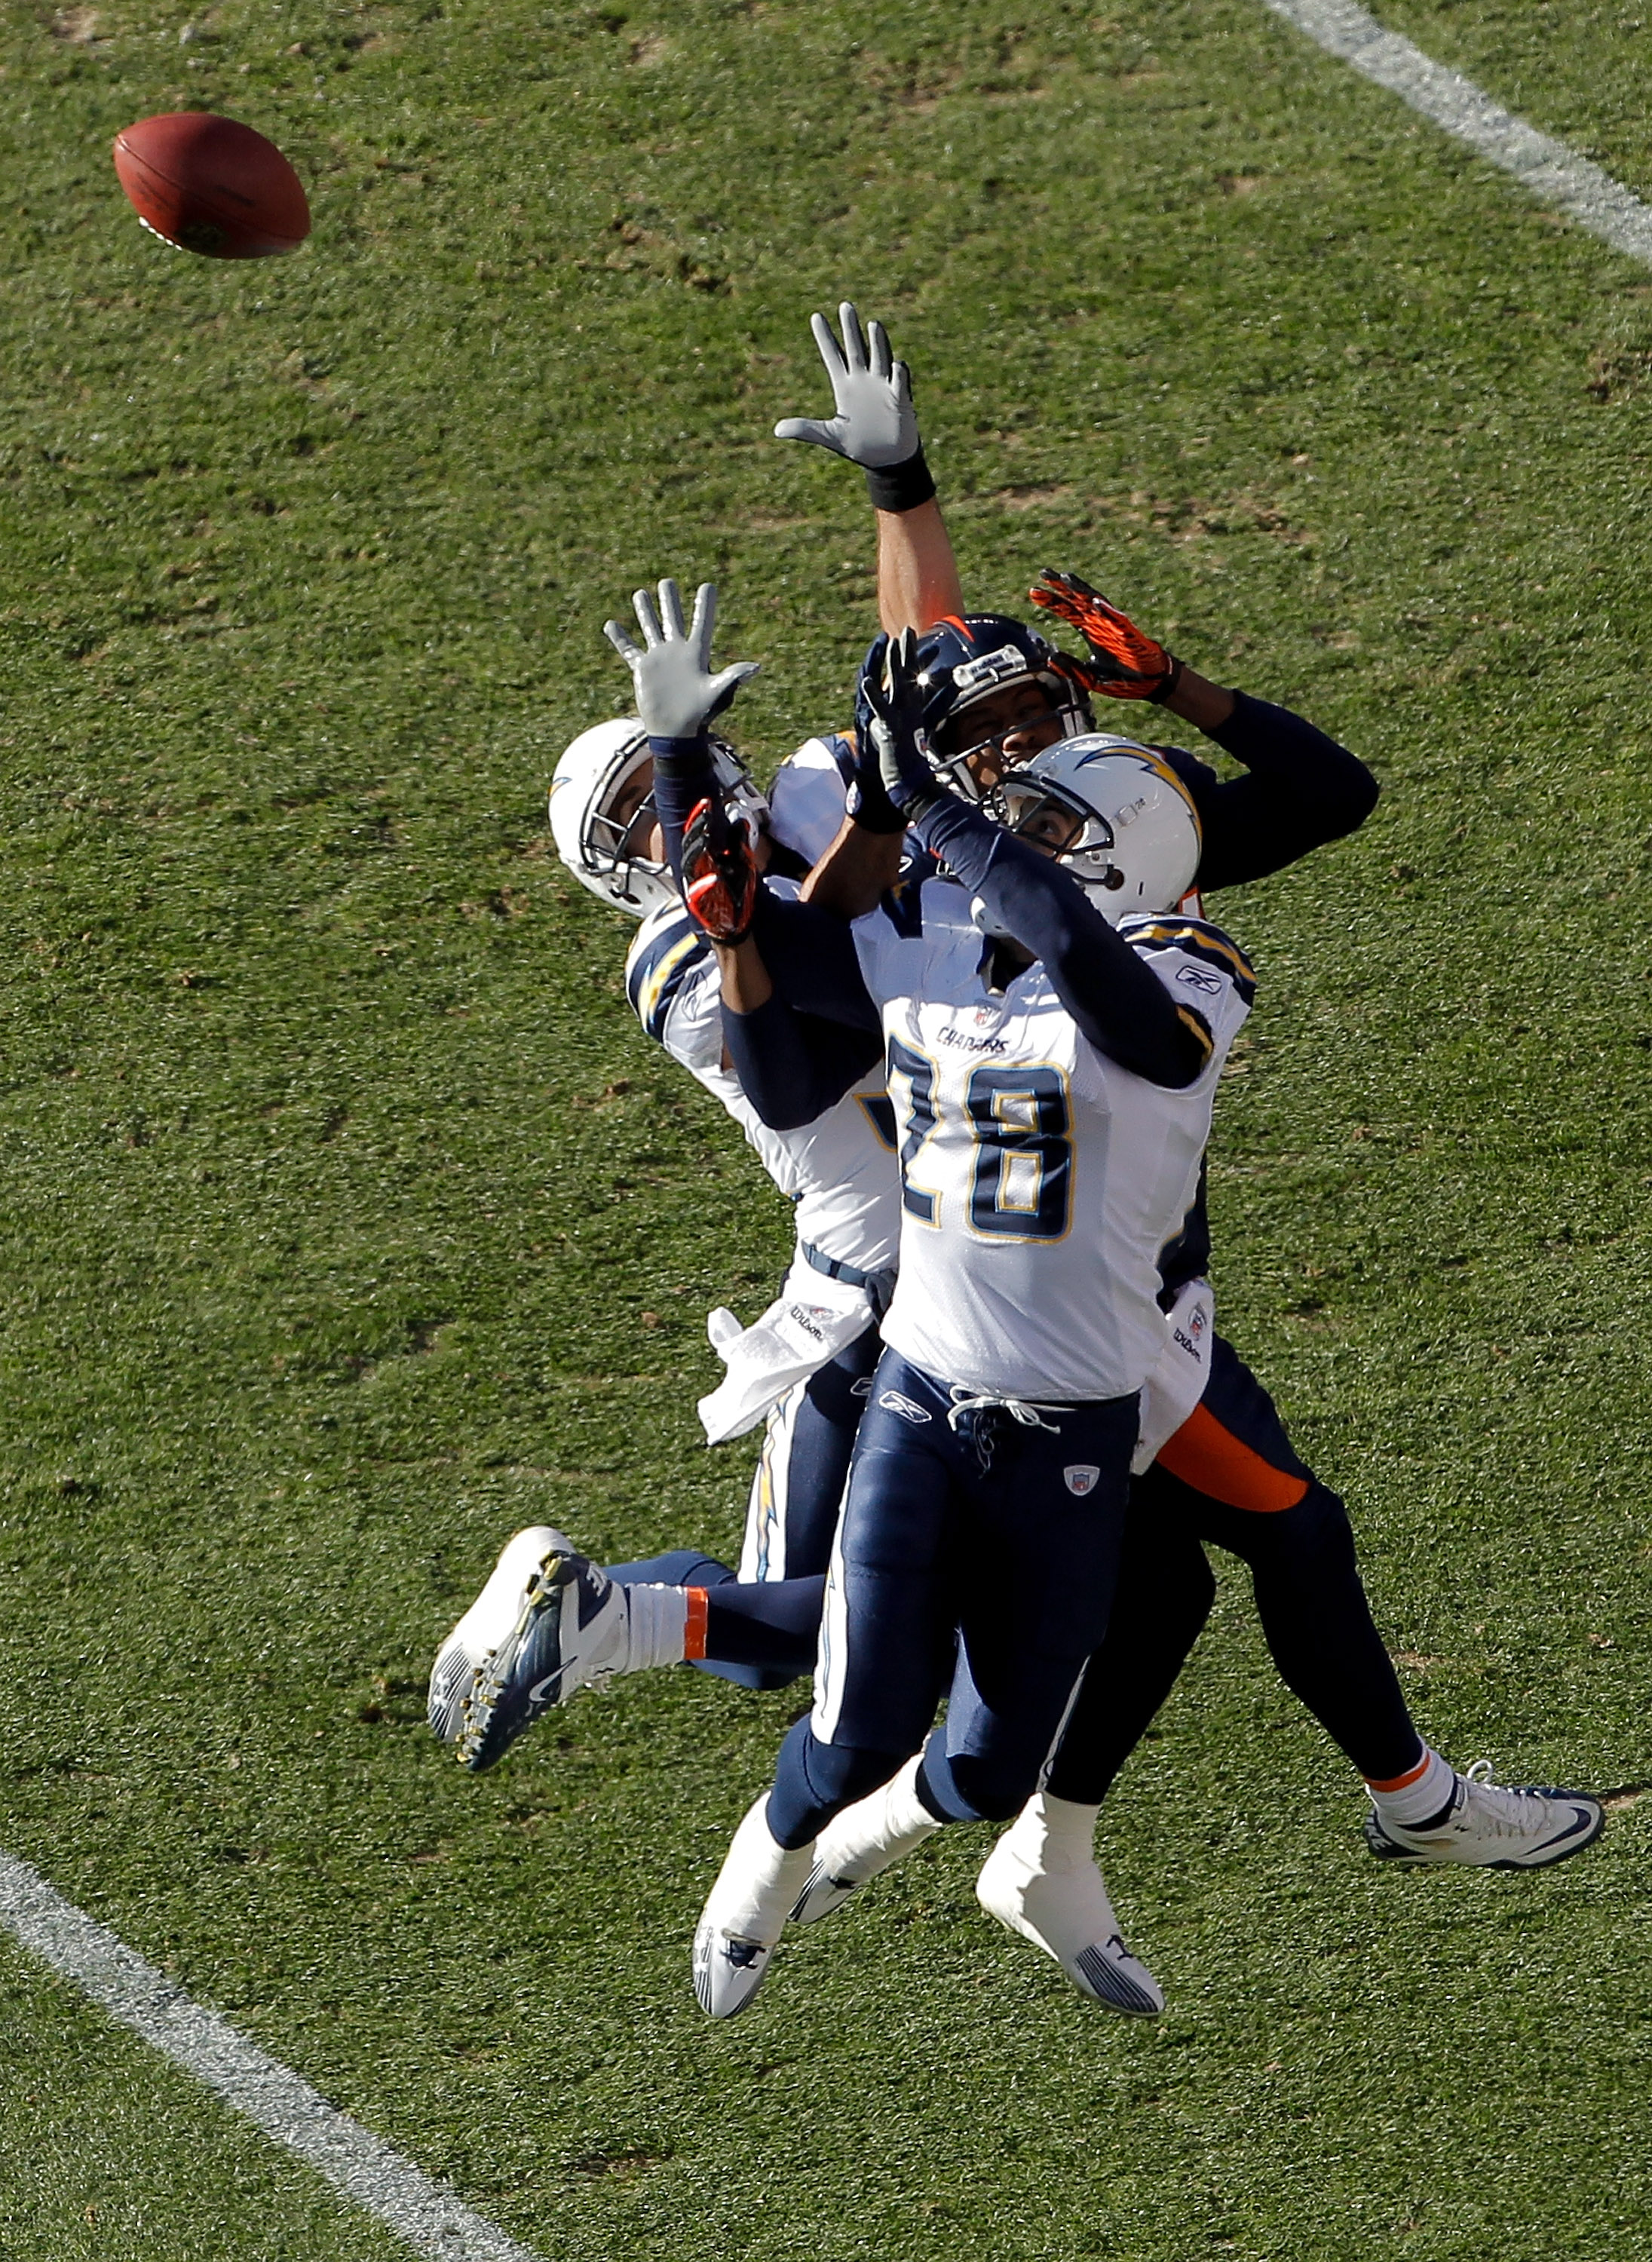 DENVER, CO - JANUARY 2:  Safety Eric Weddle #32 of the San Diego Chargers makes an interception on a pass intended for wide receiver Brandon Lloyd #84 of the Denver Broncos as they battle in the air with safety Steve Gregory #28 during the first quarter a